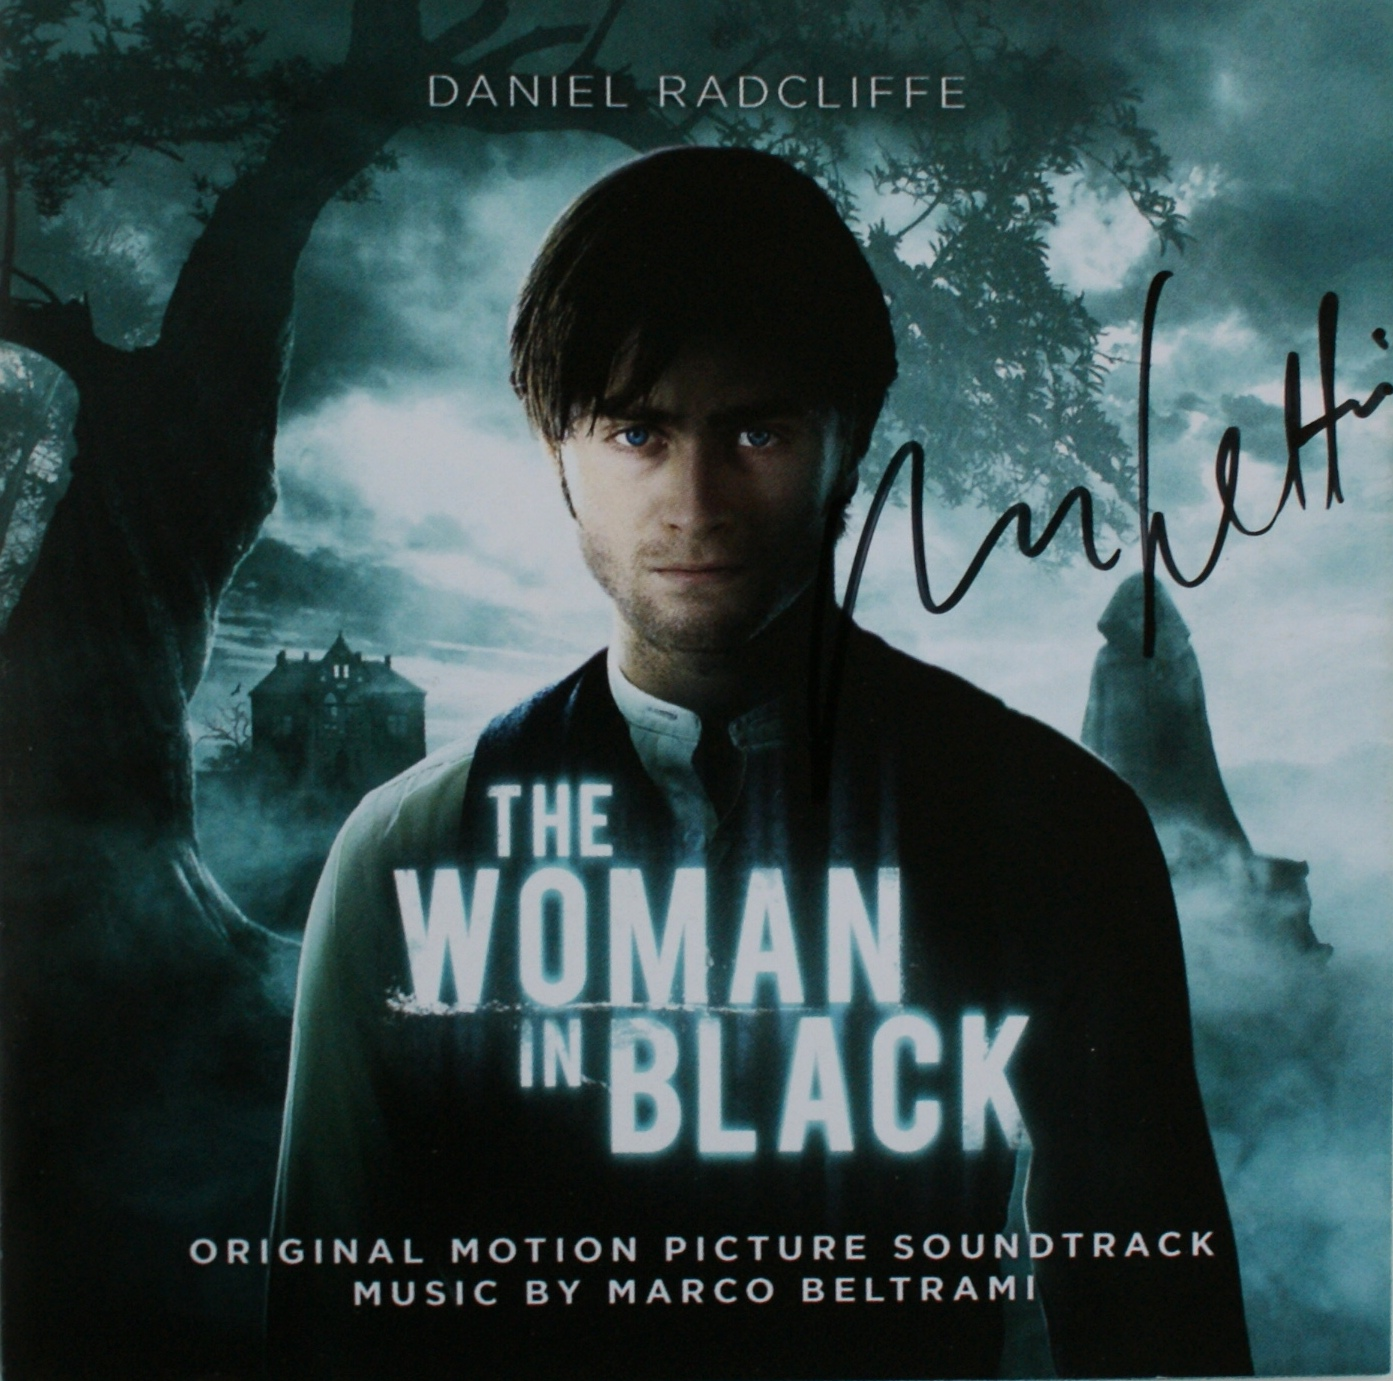 marco beltrami - blockbuster and horror film composer